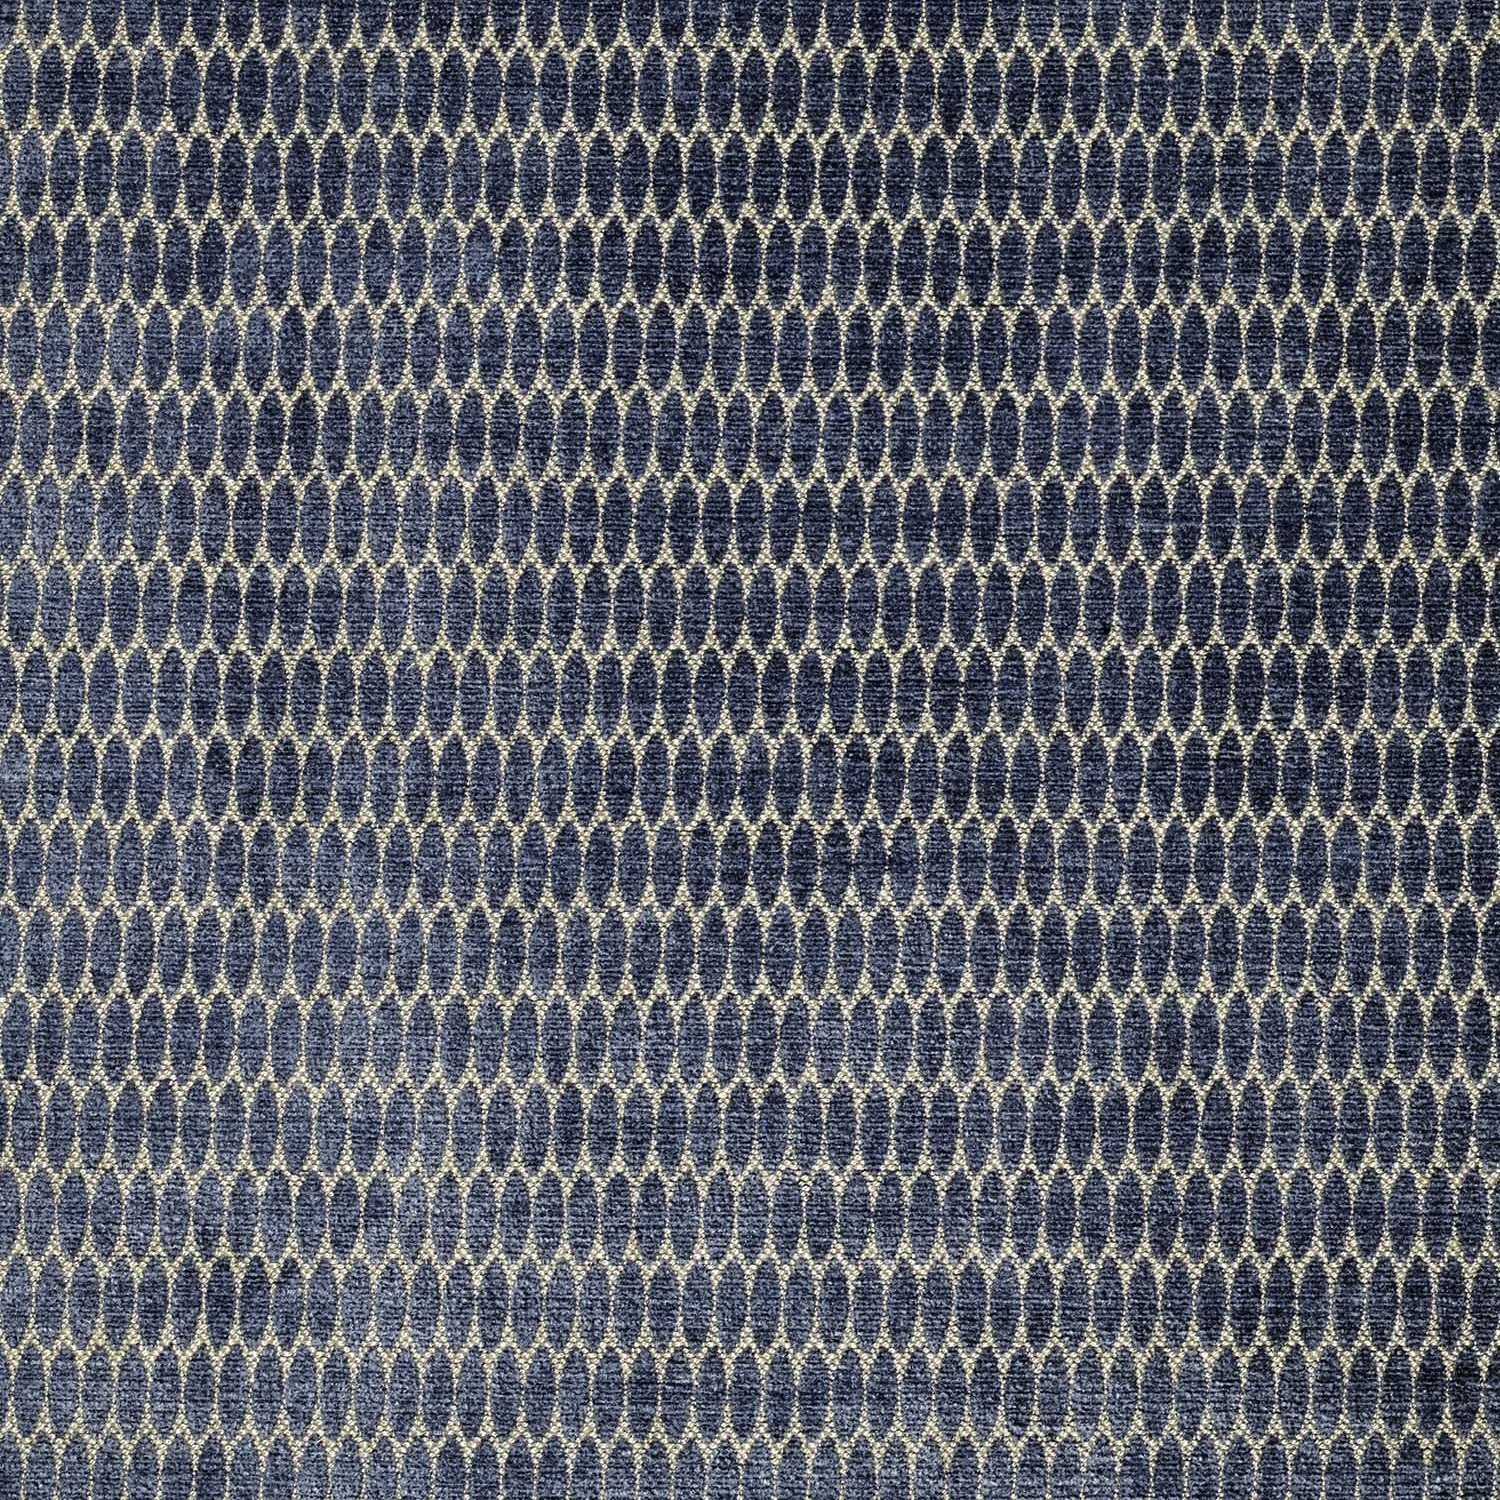 Copy of <p><strong>COMPTON</strong>dark blue 1410-01<a href=/the-winthorp-collection/compton-dark-blue-1410-01>More →</a></p>